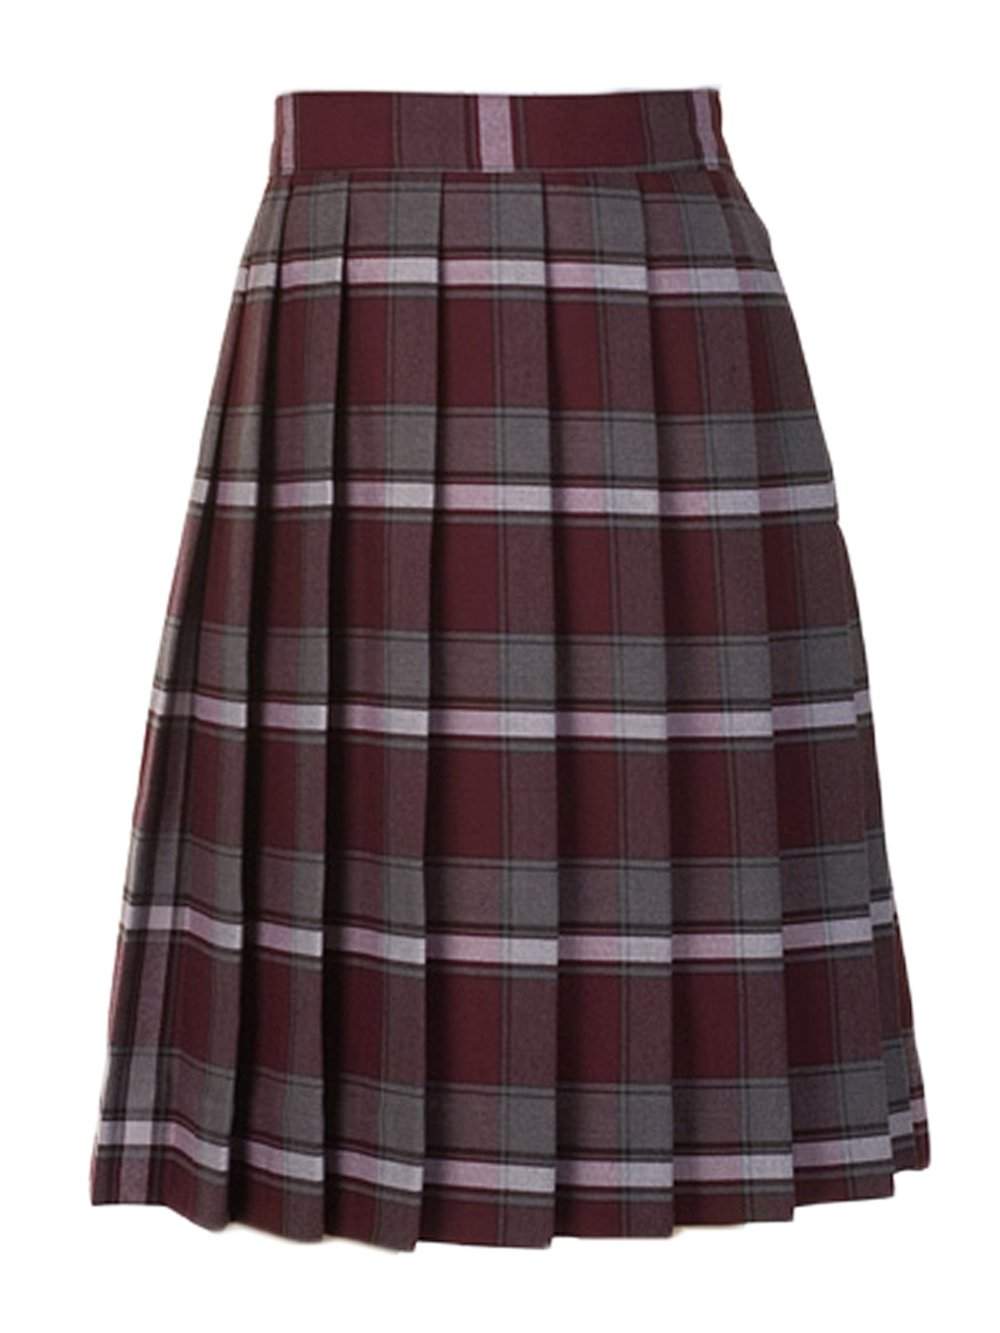 Cookie's Brand Big Girls' Pleated Skirt - burgundy/gray/whiteplaid #91, 18